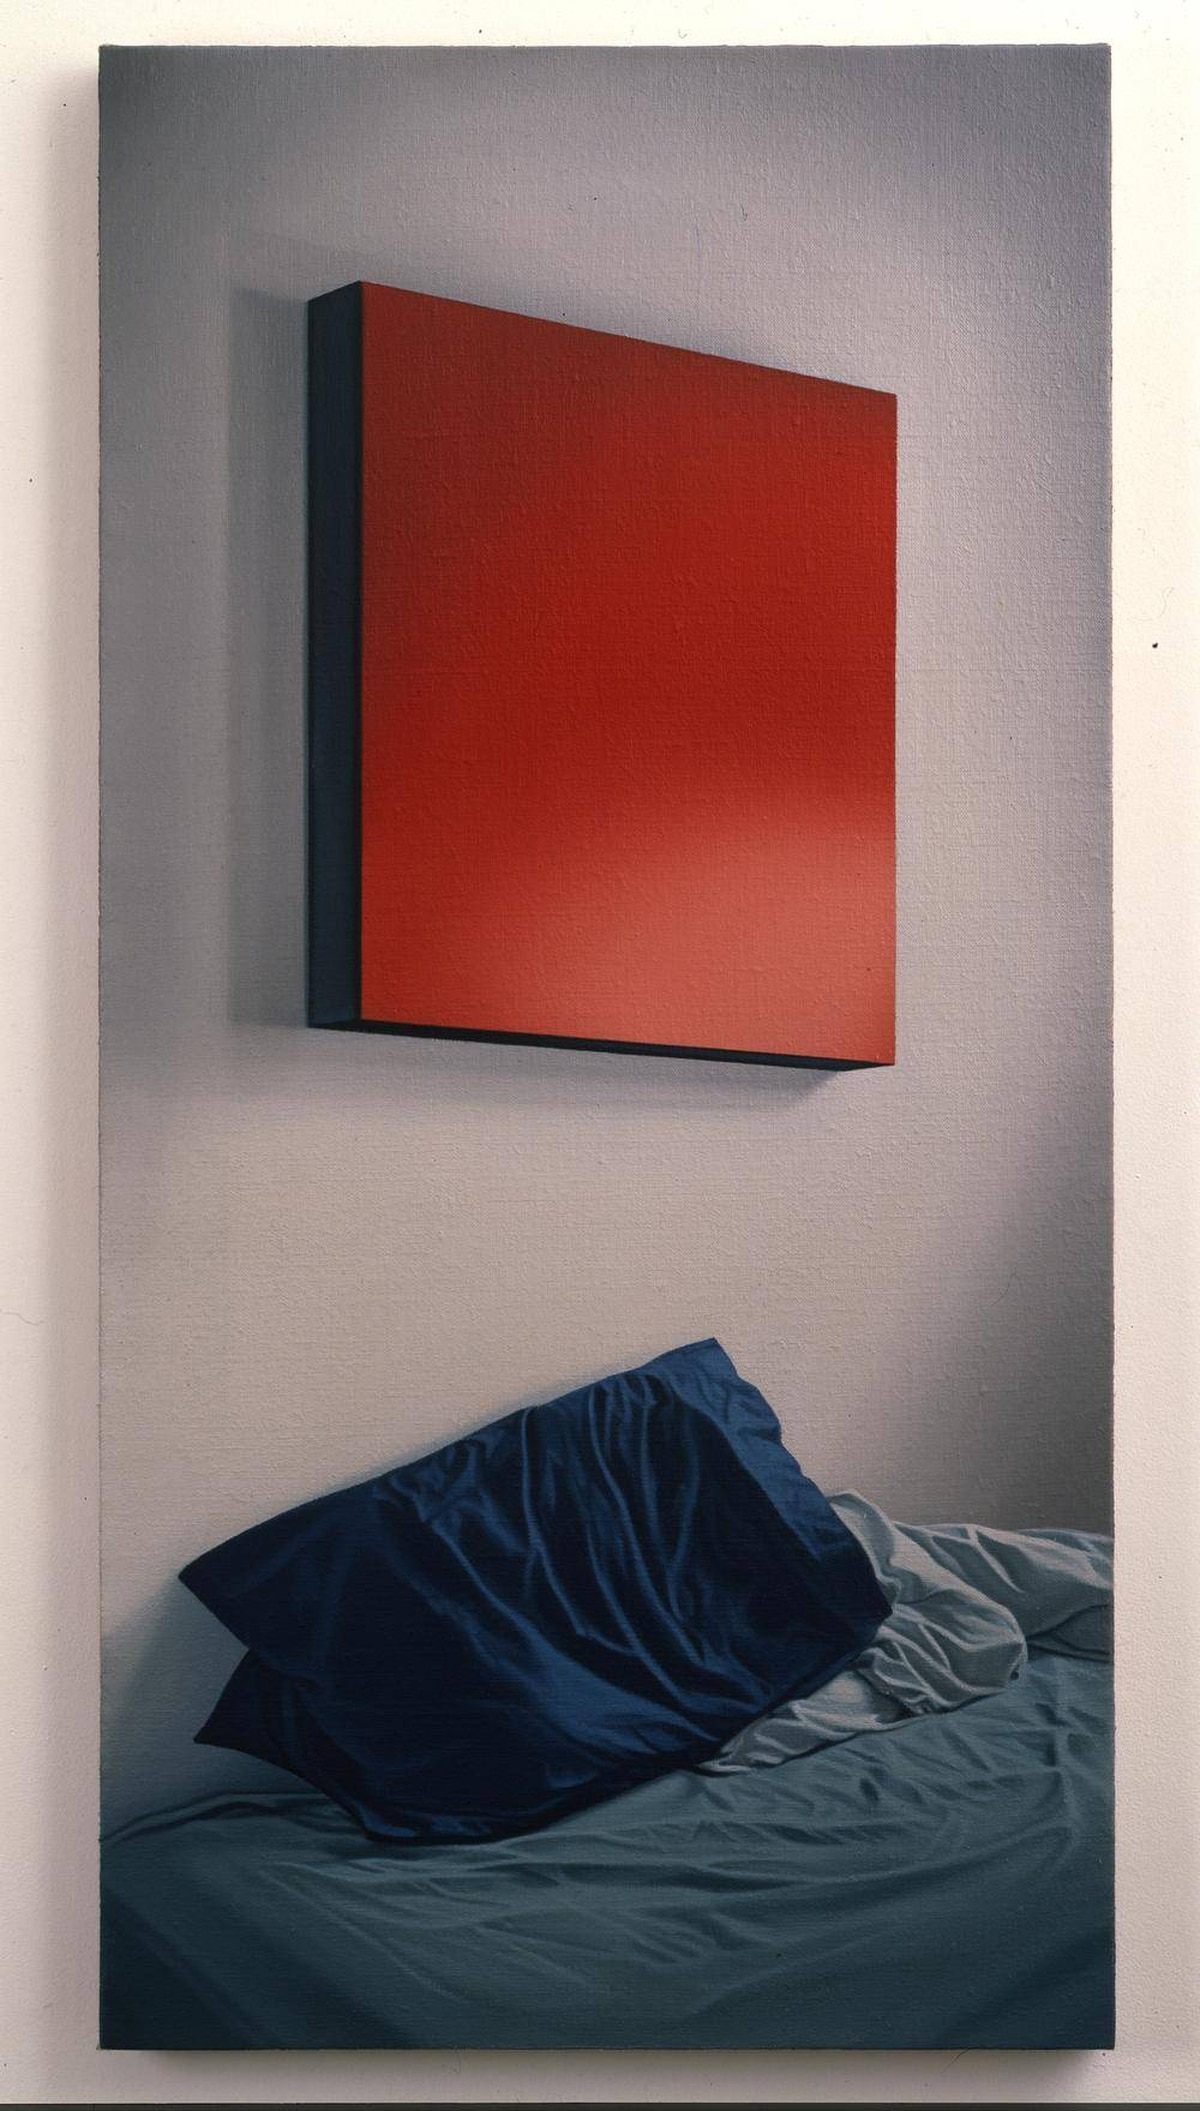 National Gallery of Canada; Jack Shainman Gallery; Montreal Museum of Fine Arts